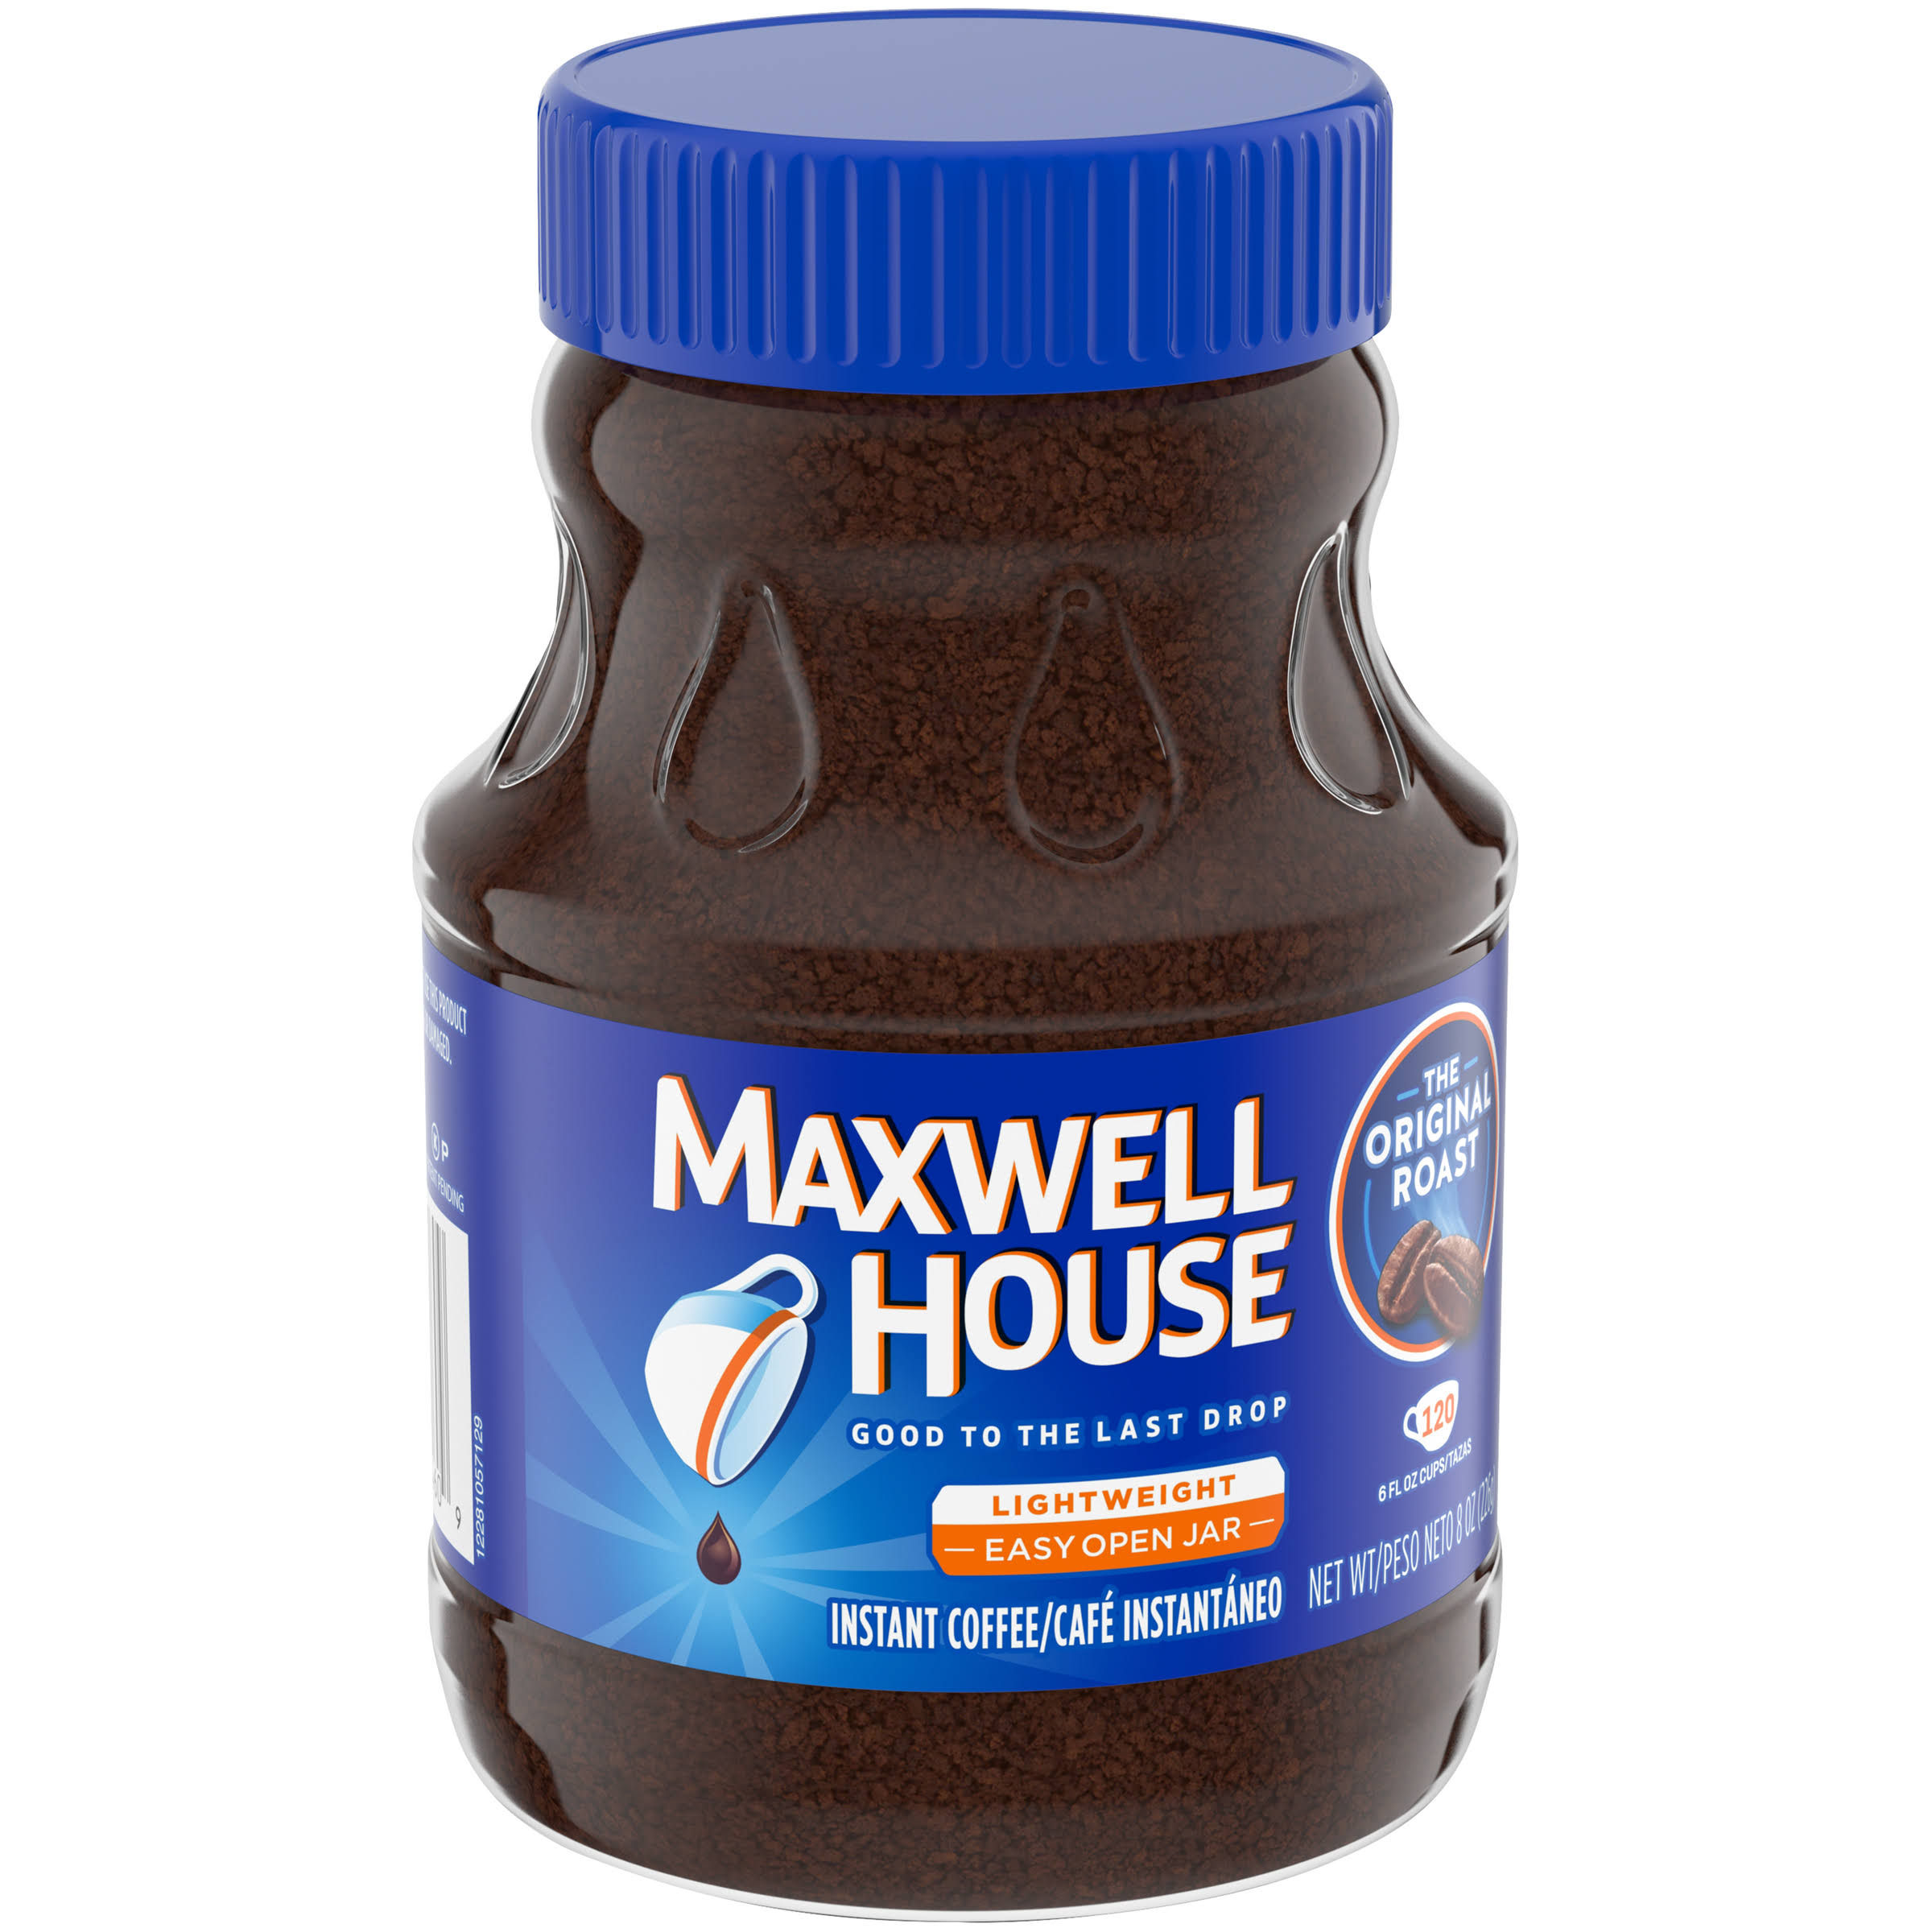 Maxwell House Instant Coffee - The Original Roast, 8oz